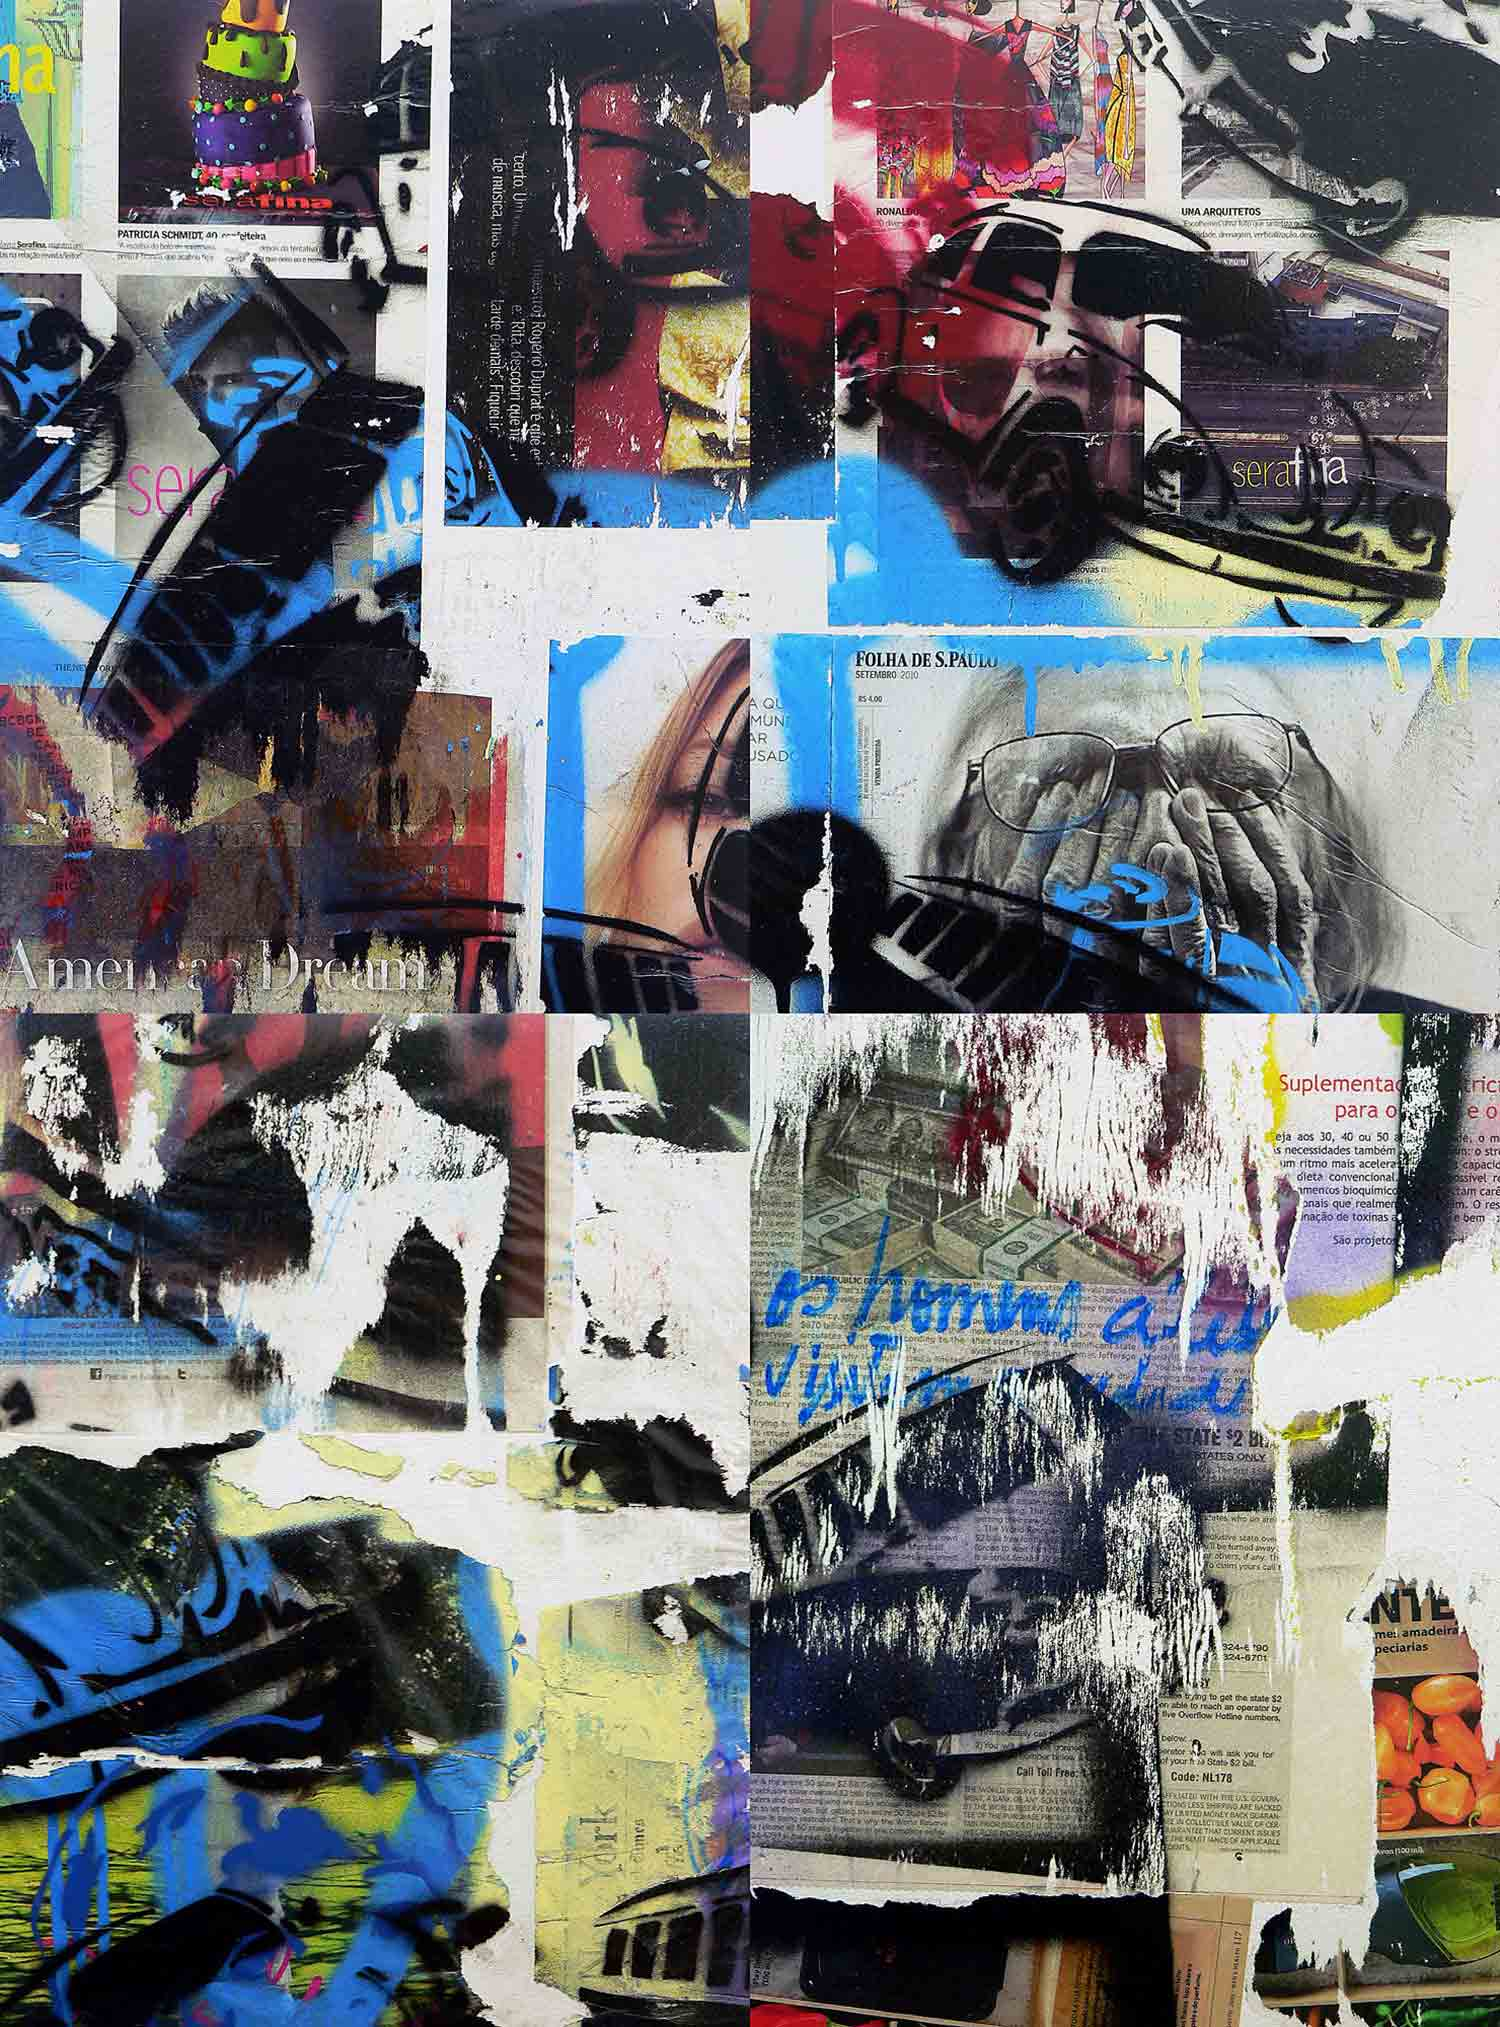 american dream - 40 x 30 cm each (4 parts) - mixed media on adhesive vinyl mounted on canvas - 2010